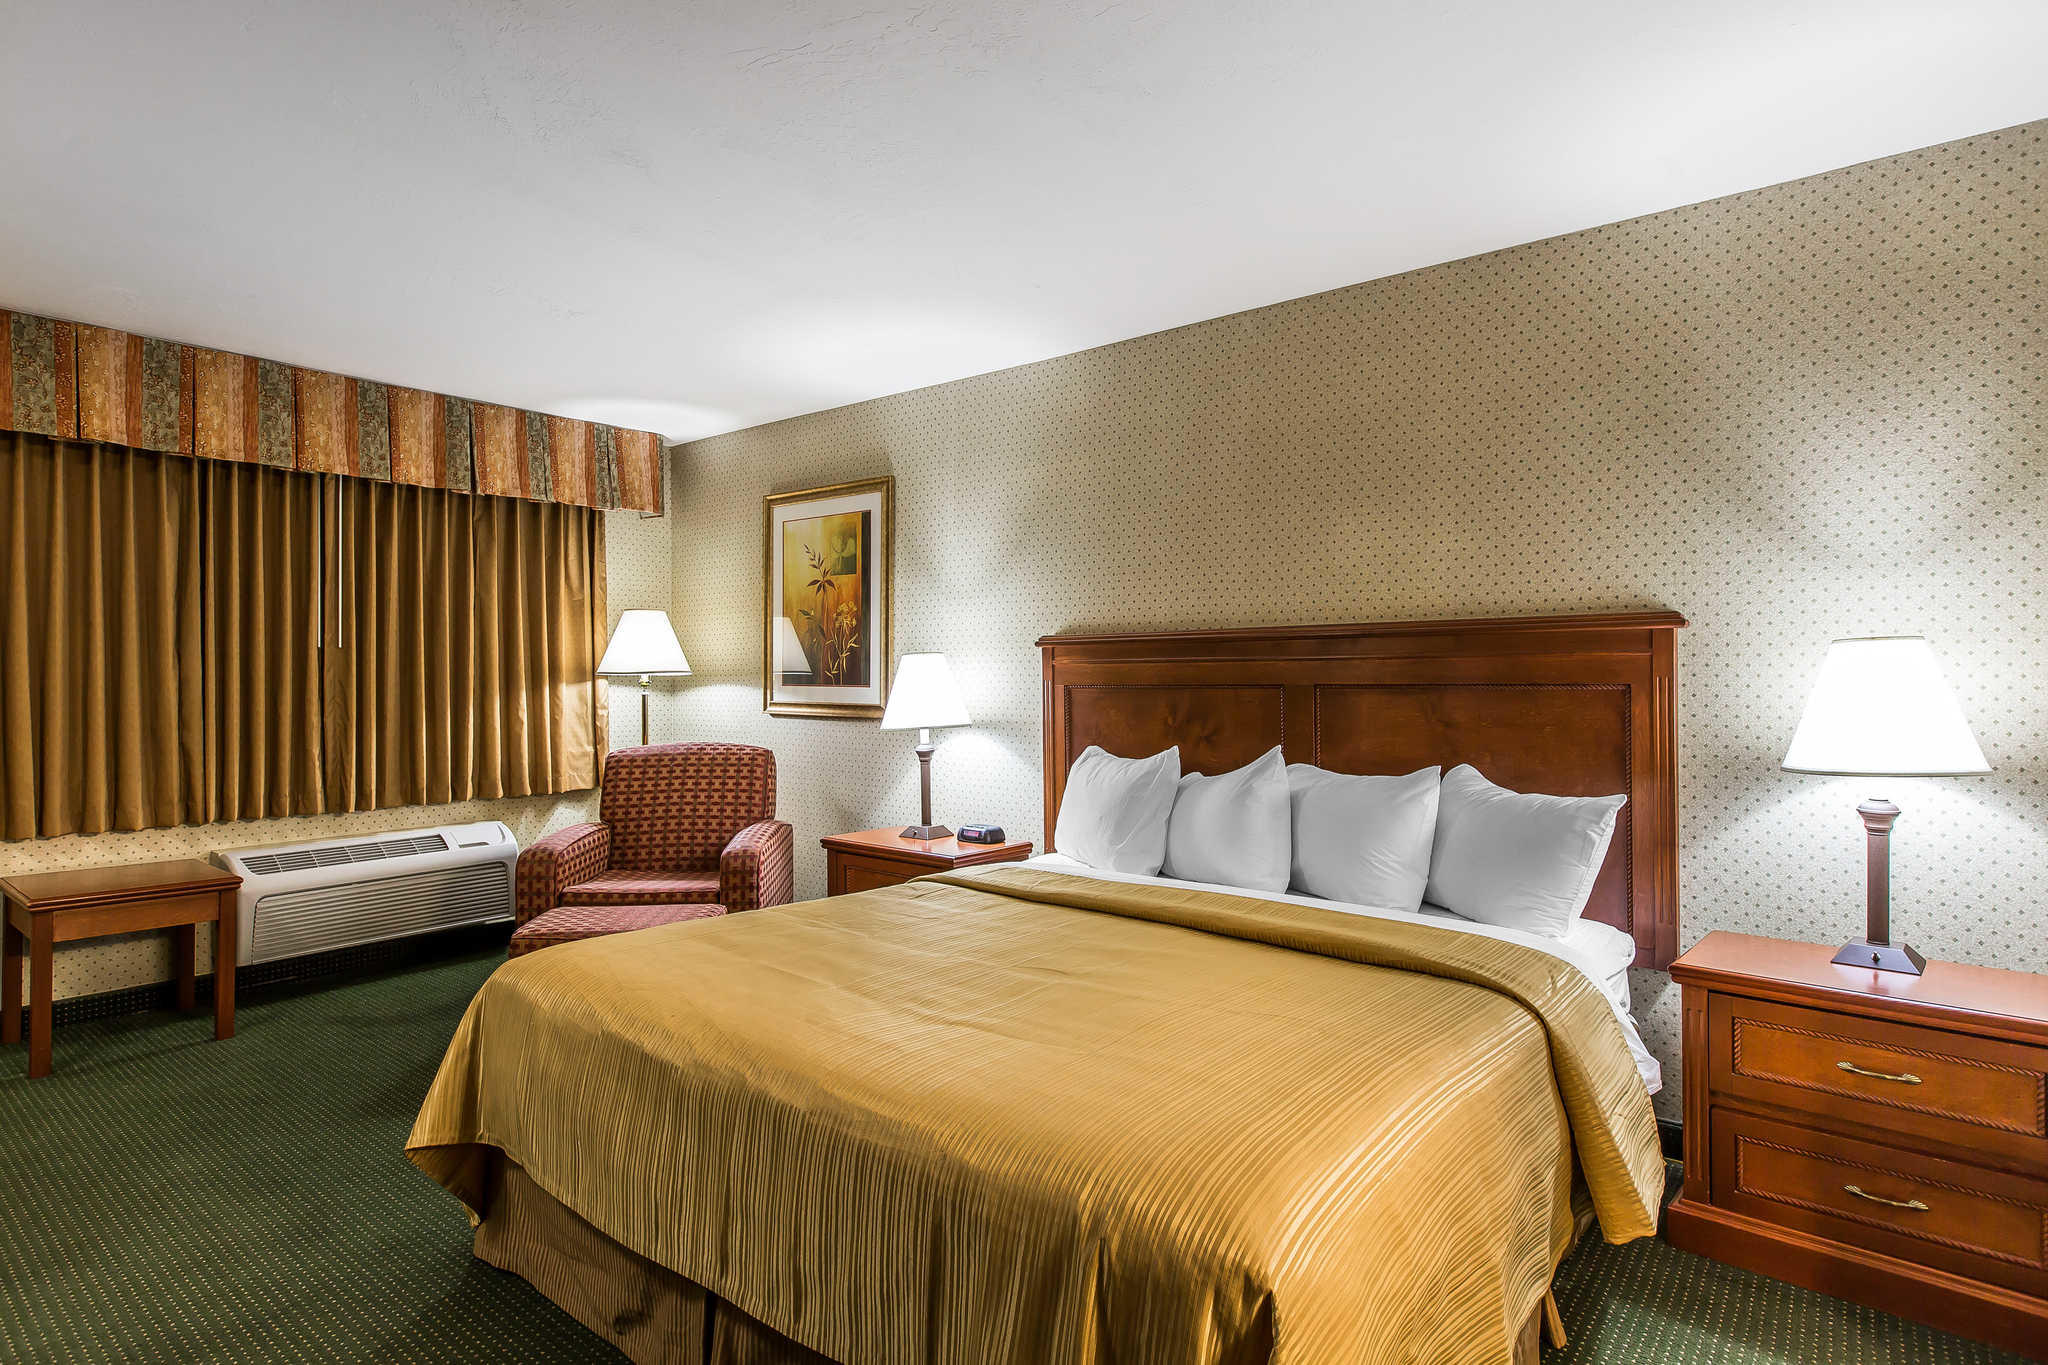 Quality Inn Near China Lake Naval Station Ridgecrest UnitedStates